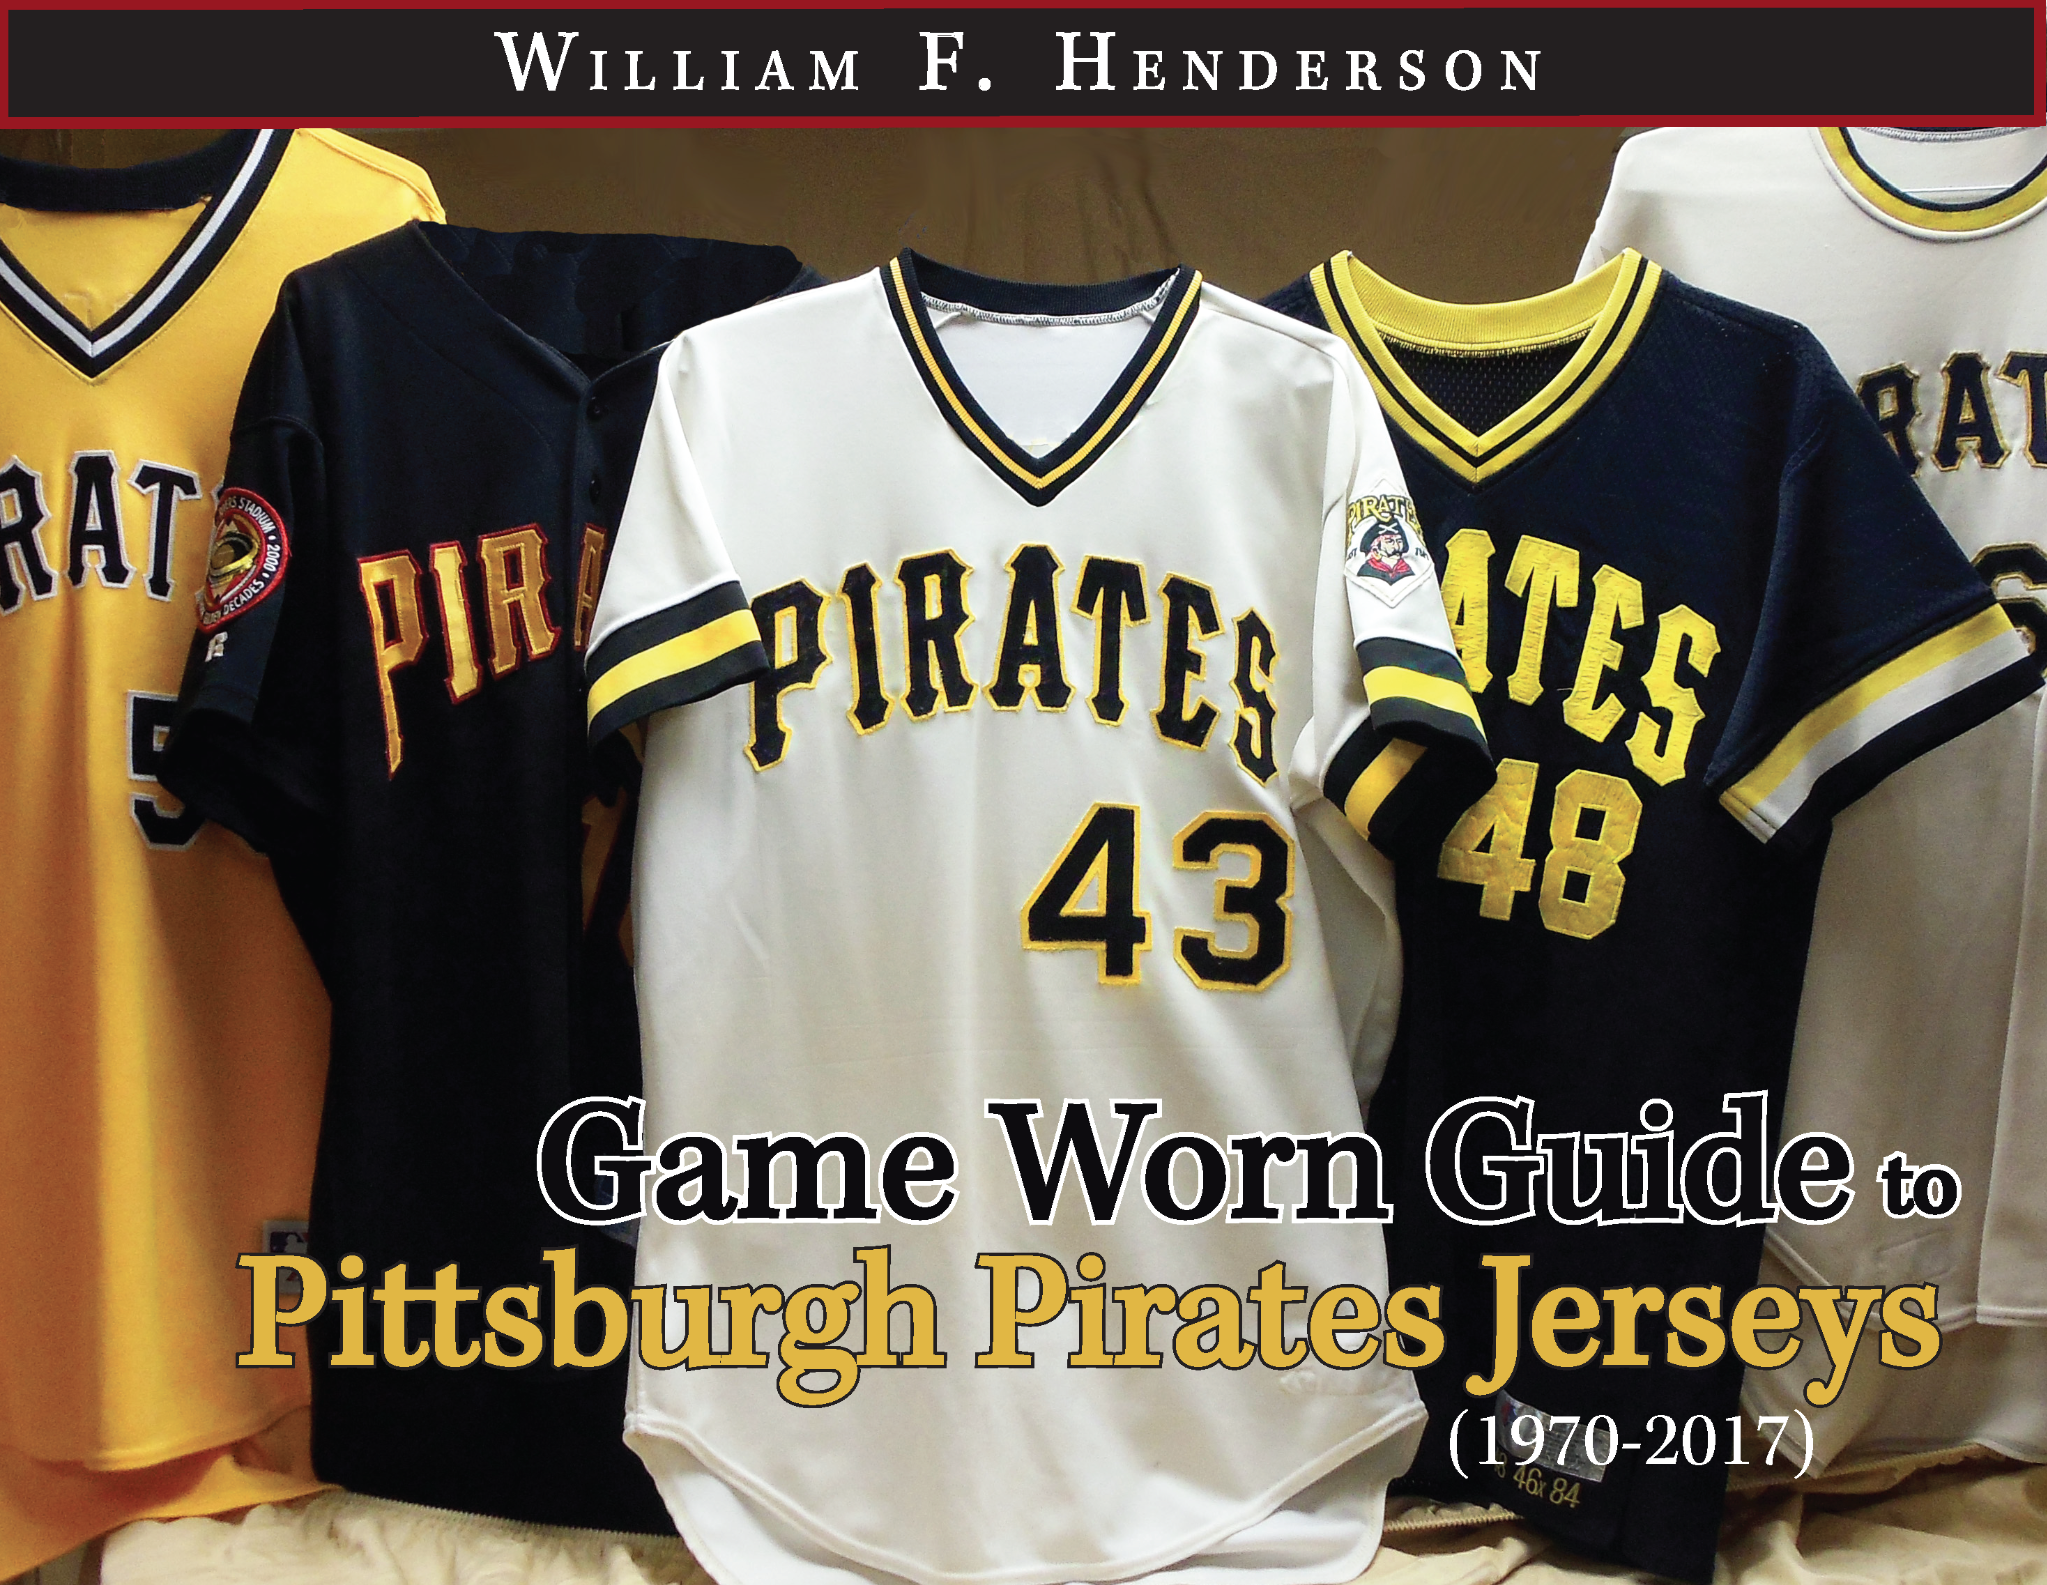 Game Worn Guide to Pittsburgh Pirates Jerseys (1970-2017)